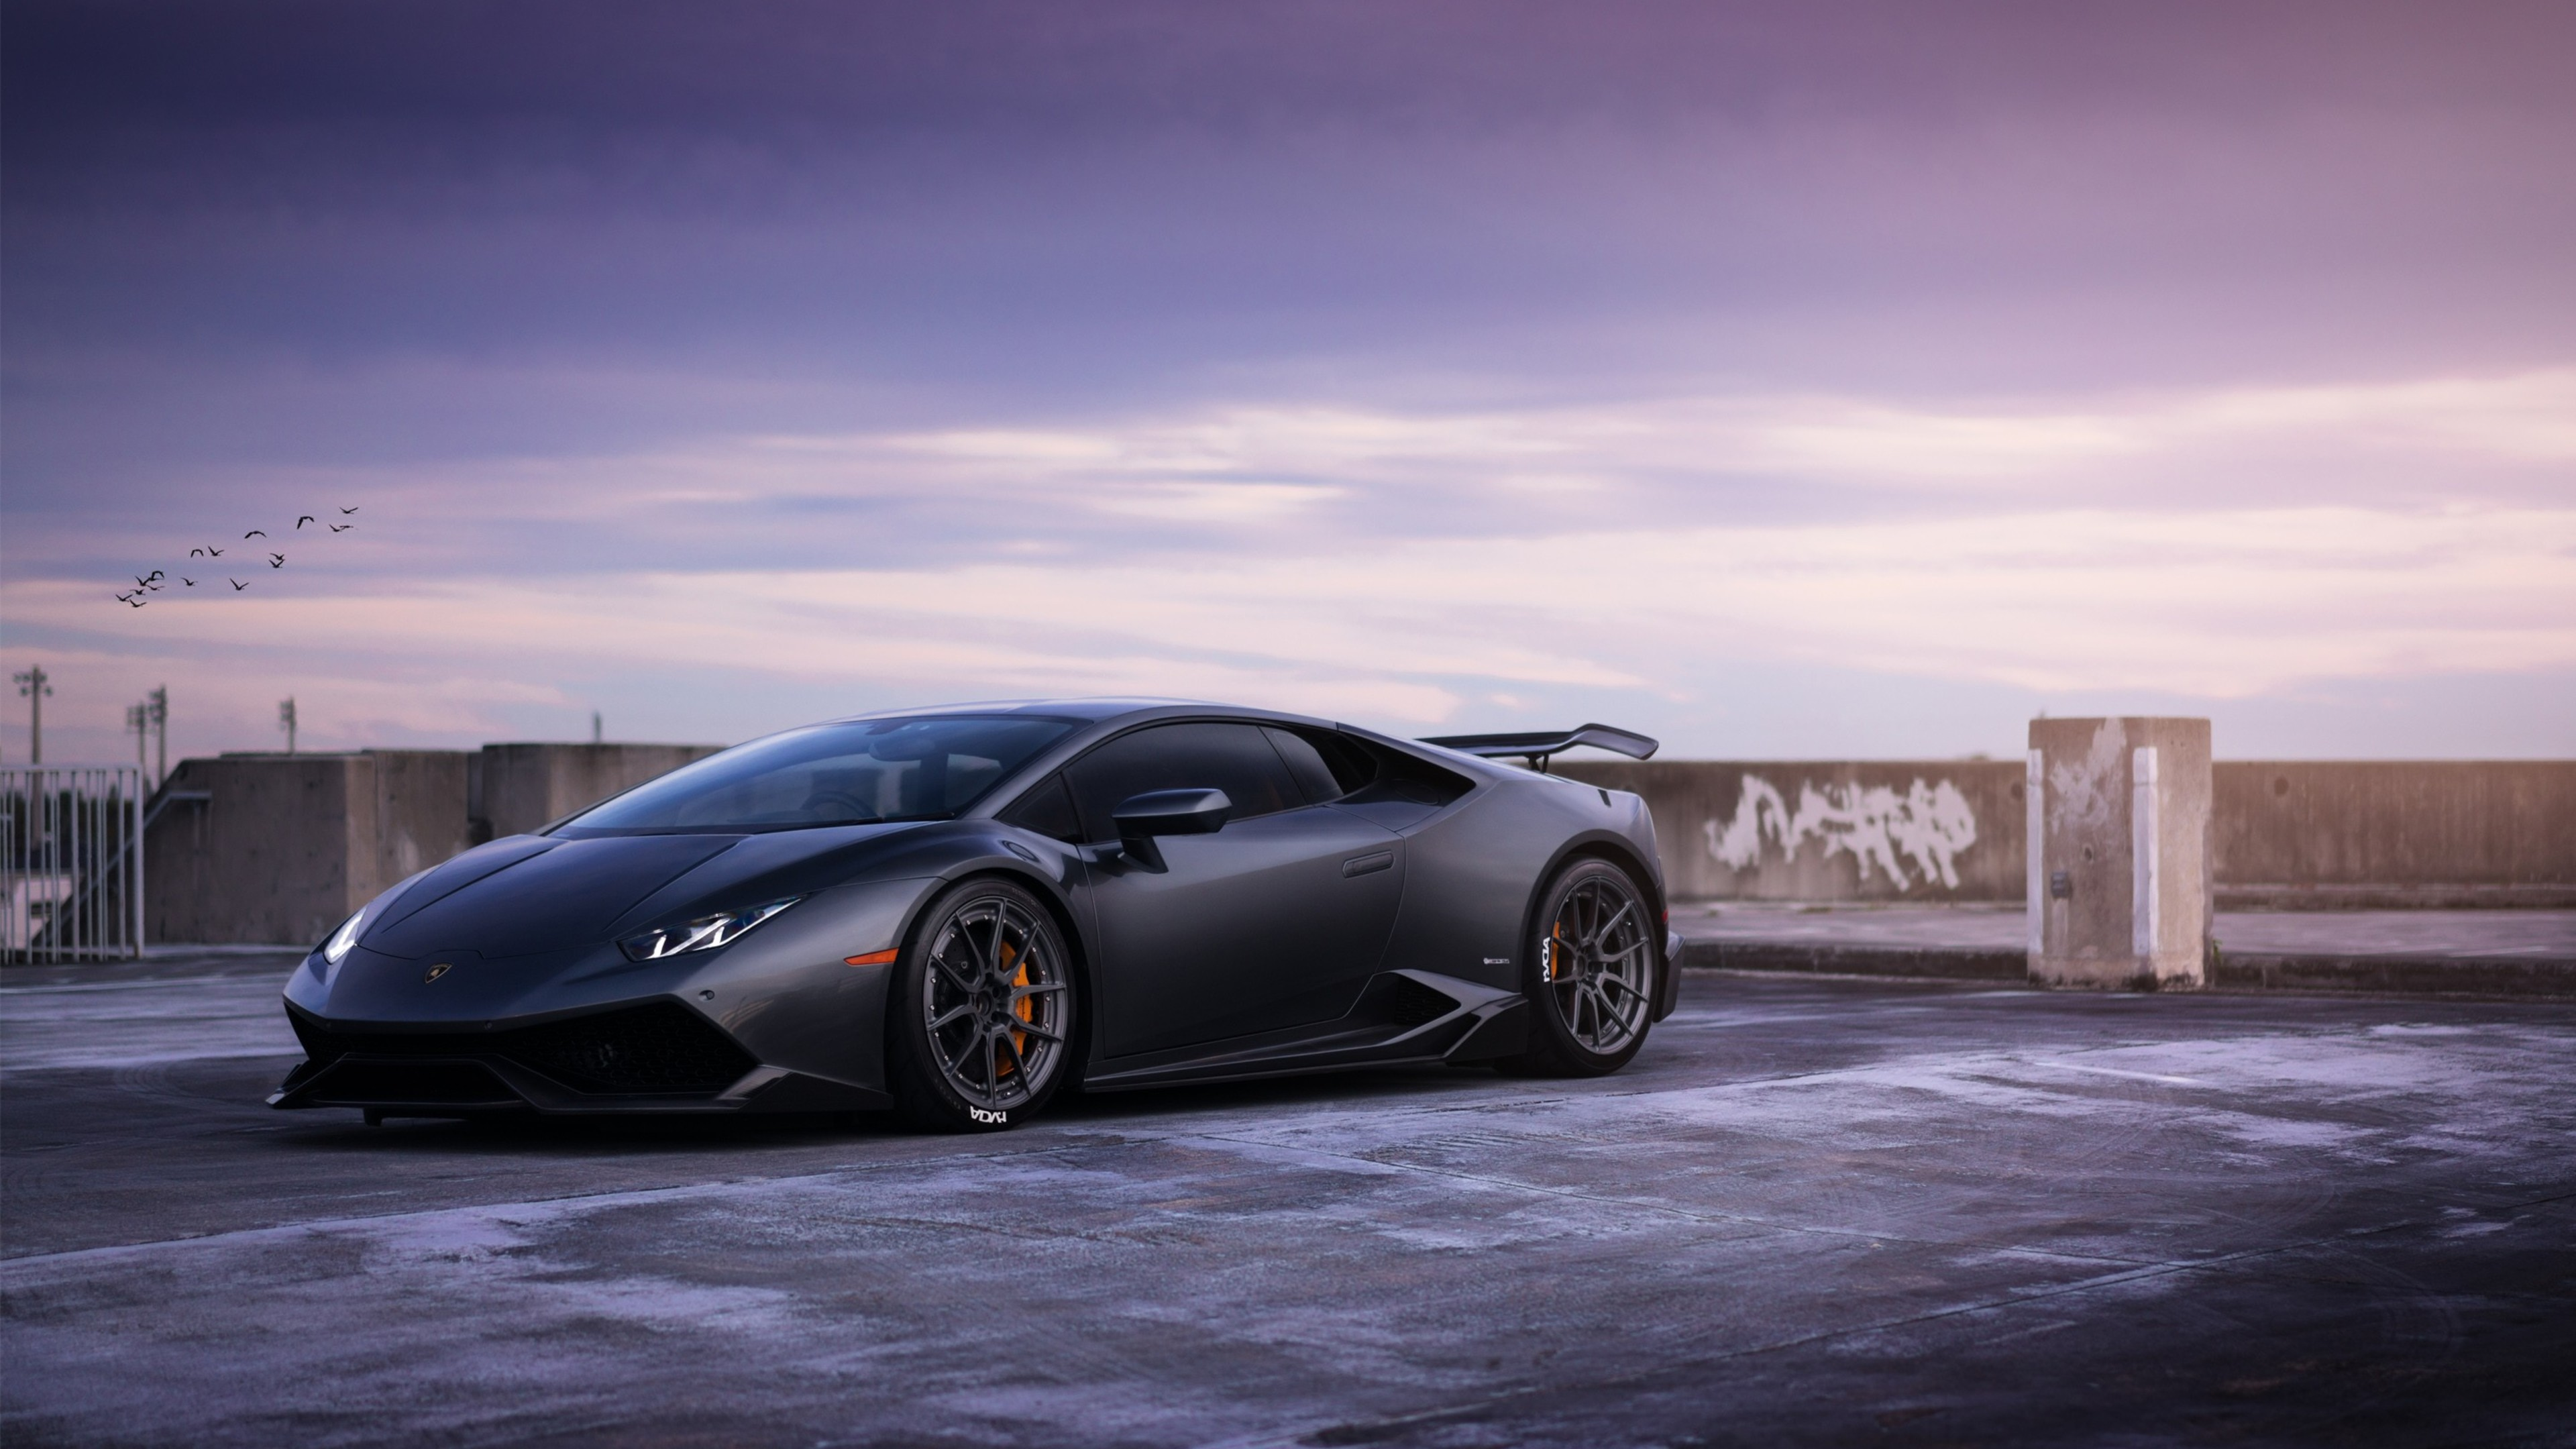 adv wheels lamborghini huracan 545 lamborghini wallpapers - Lamborghini Huracan Wallpaper